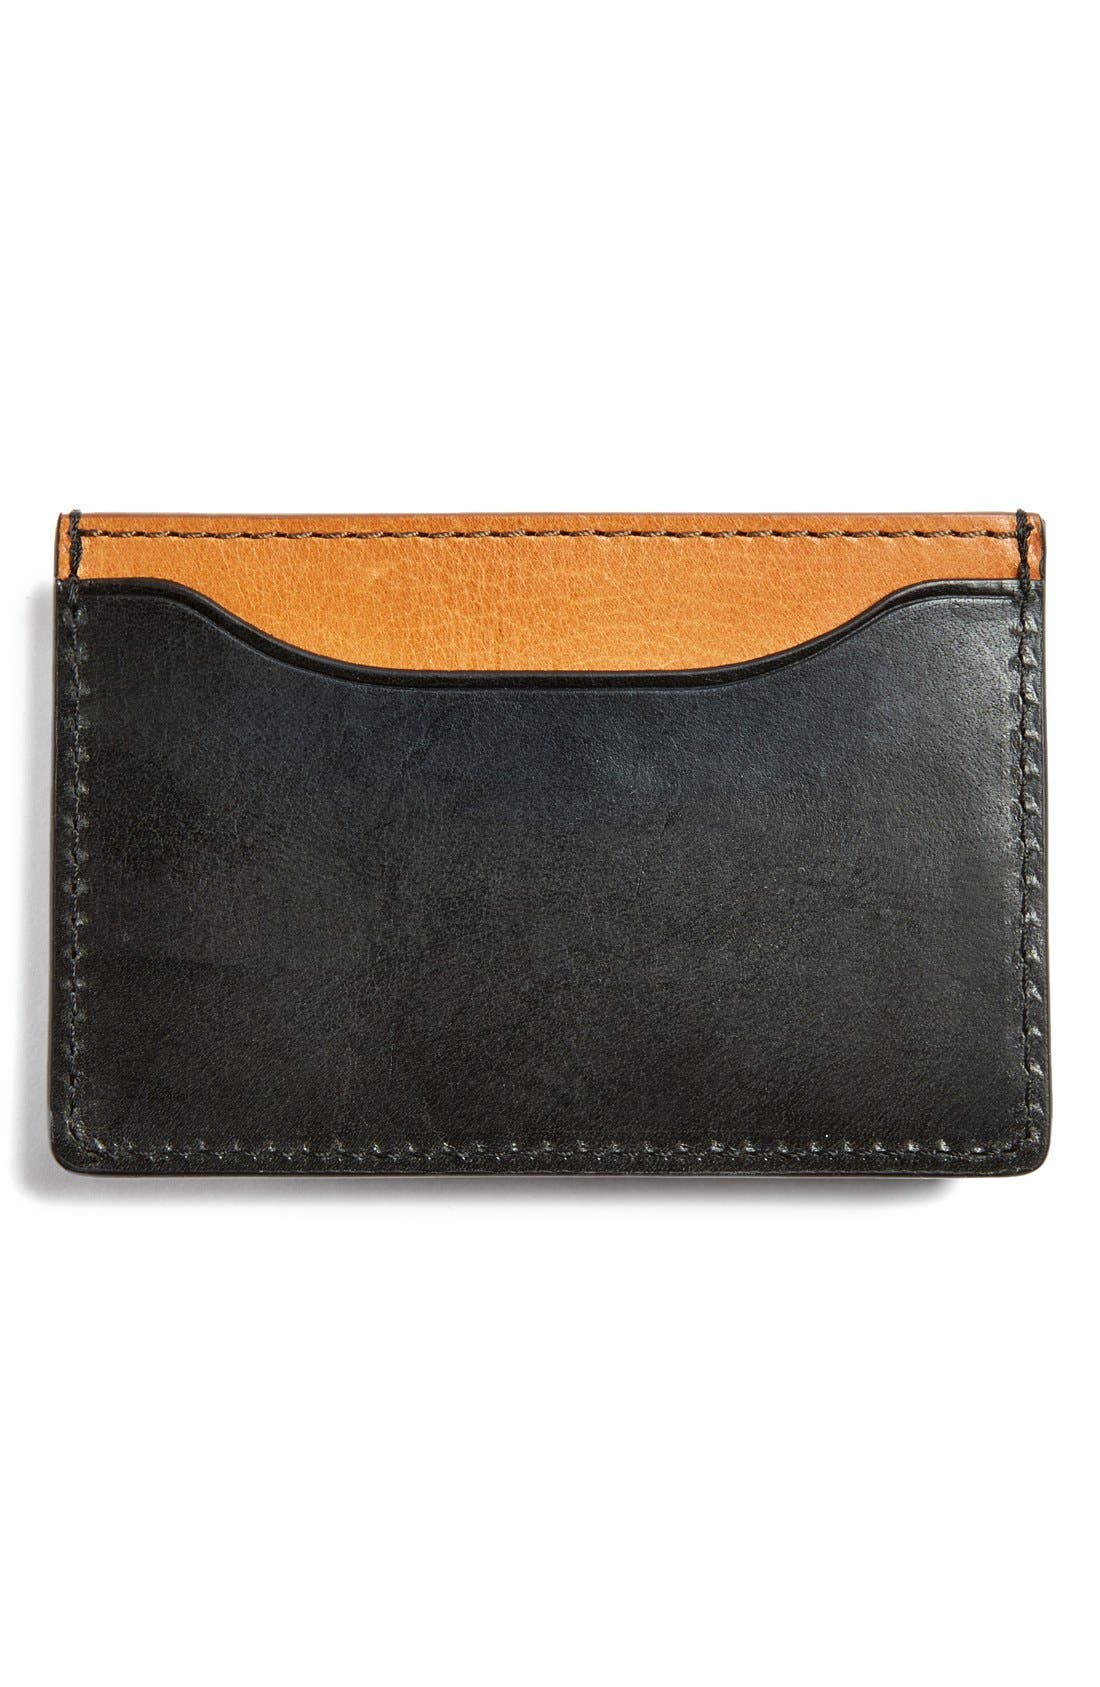 JACK SPADE,                             'Mitchell' Leather Card Holder,                             Alternate thumbnail 2, color,                             001